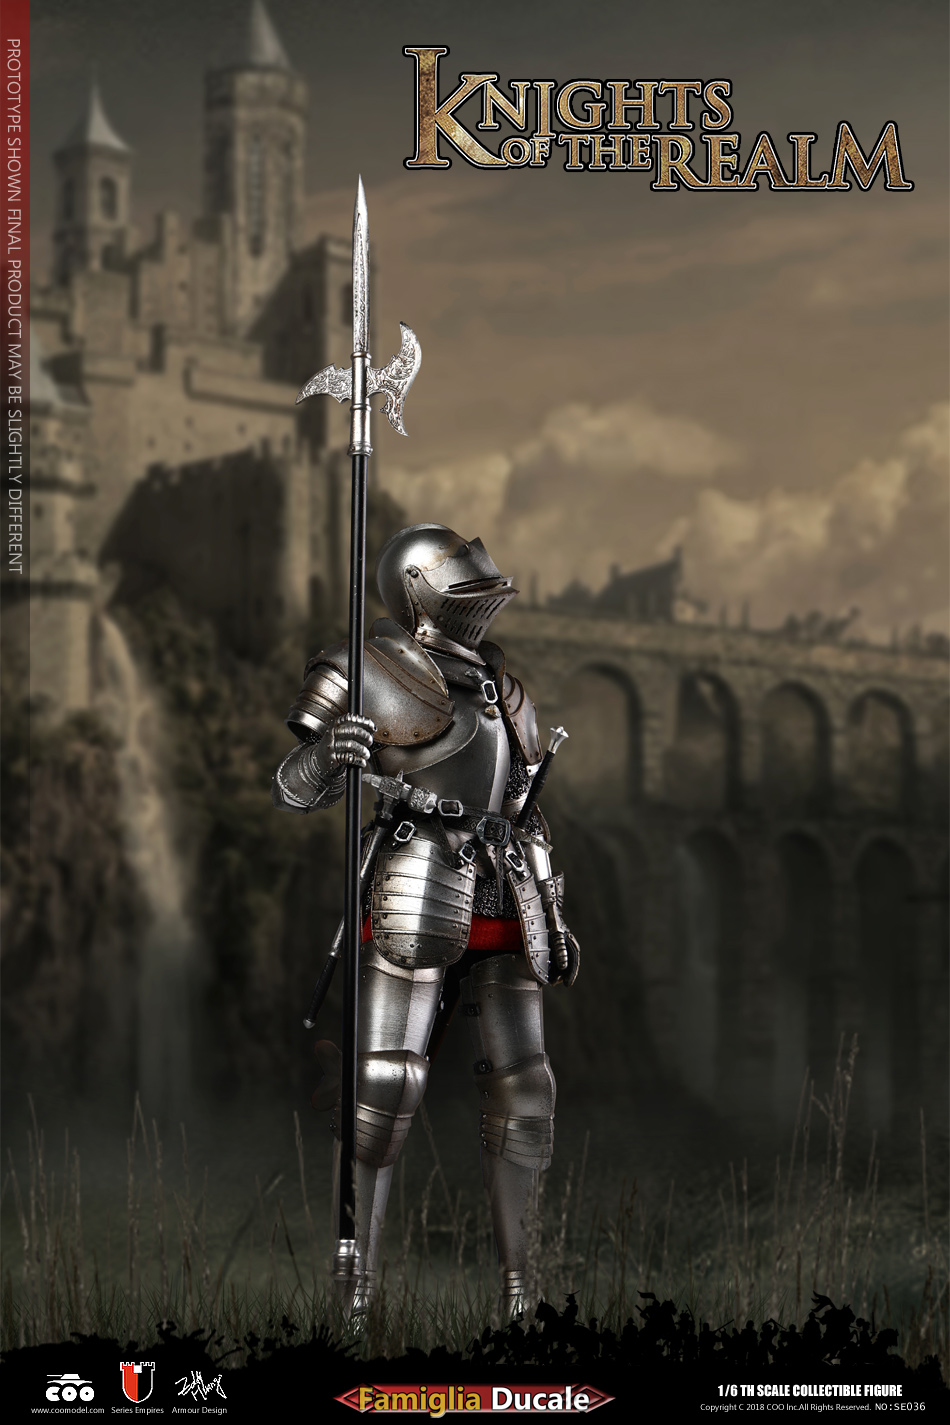 COOMODEL 1/6 Empire Series - (New Lightweight Metal) Milanese Knight 190437n6ws0z6g89rkfqed